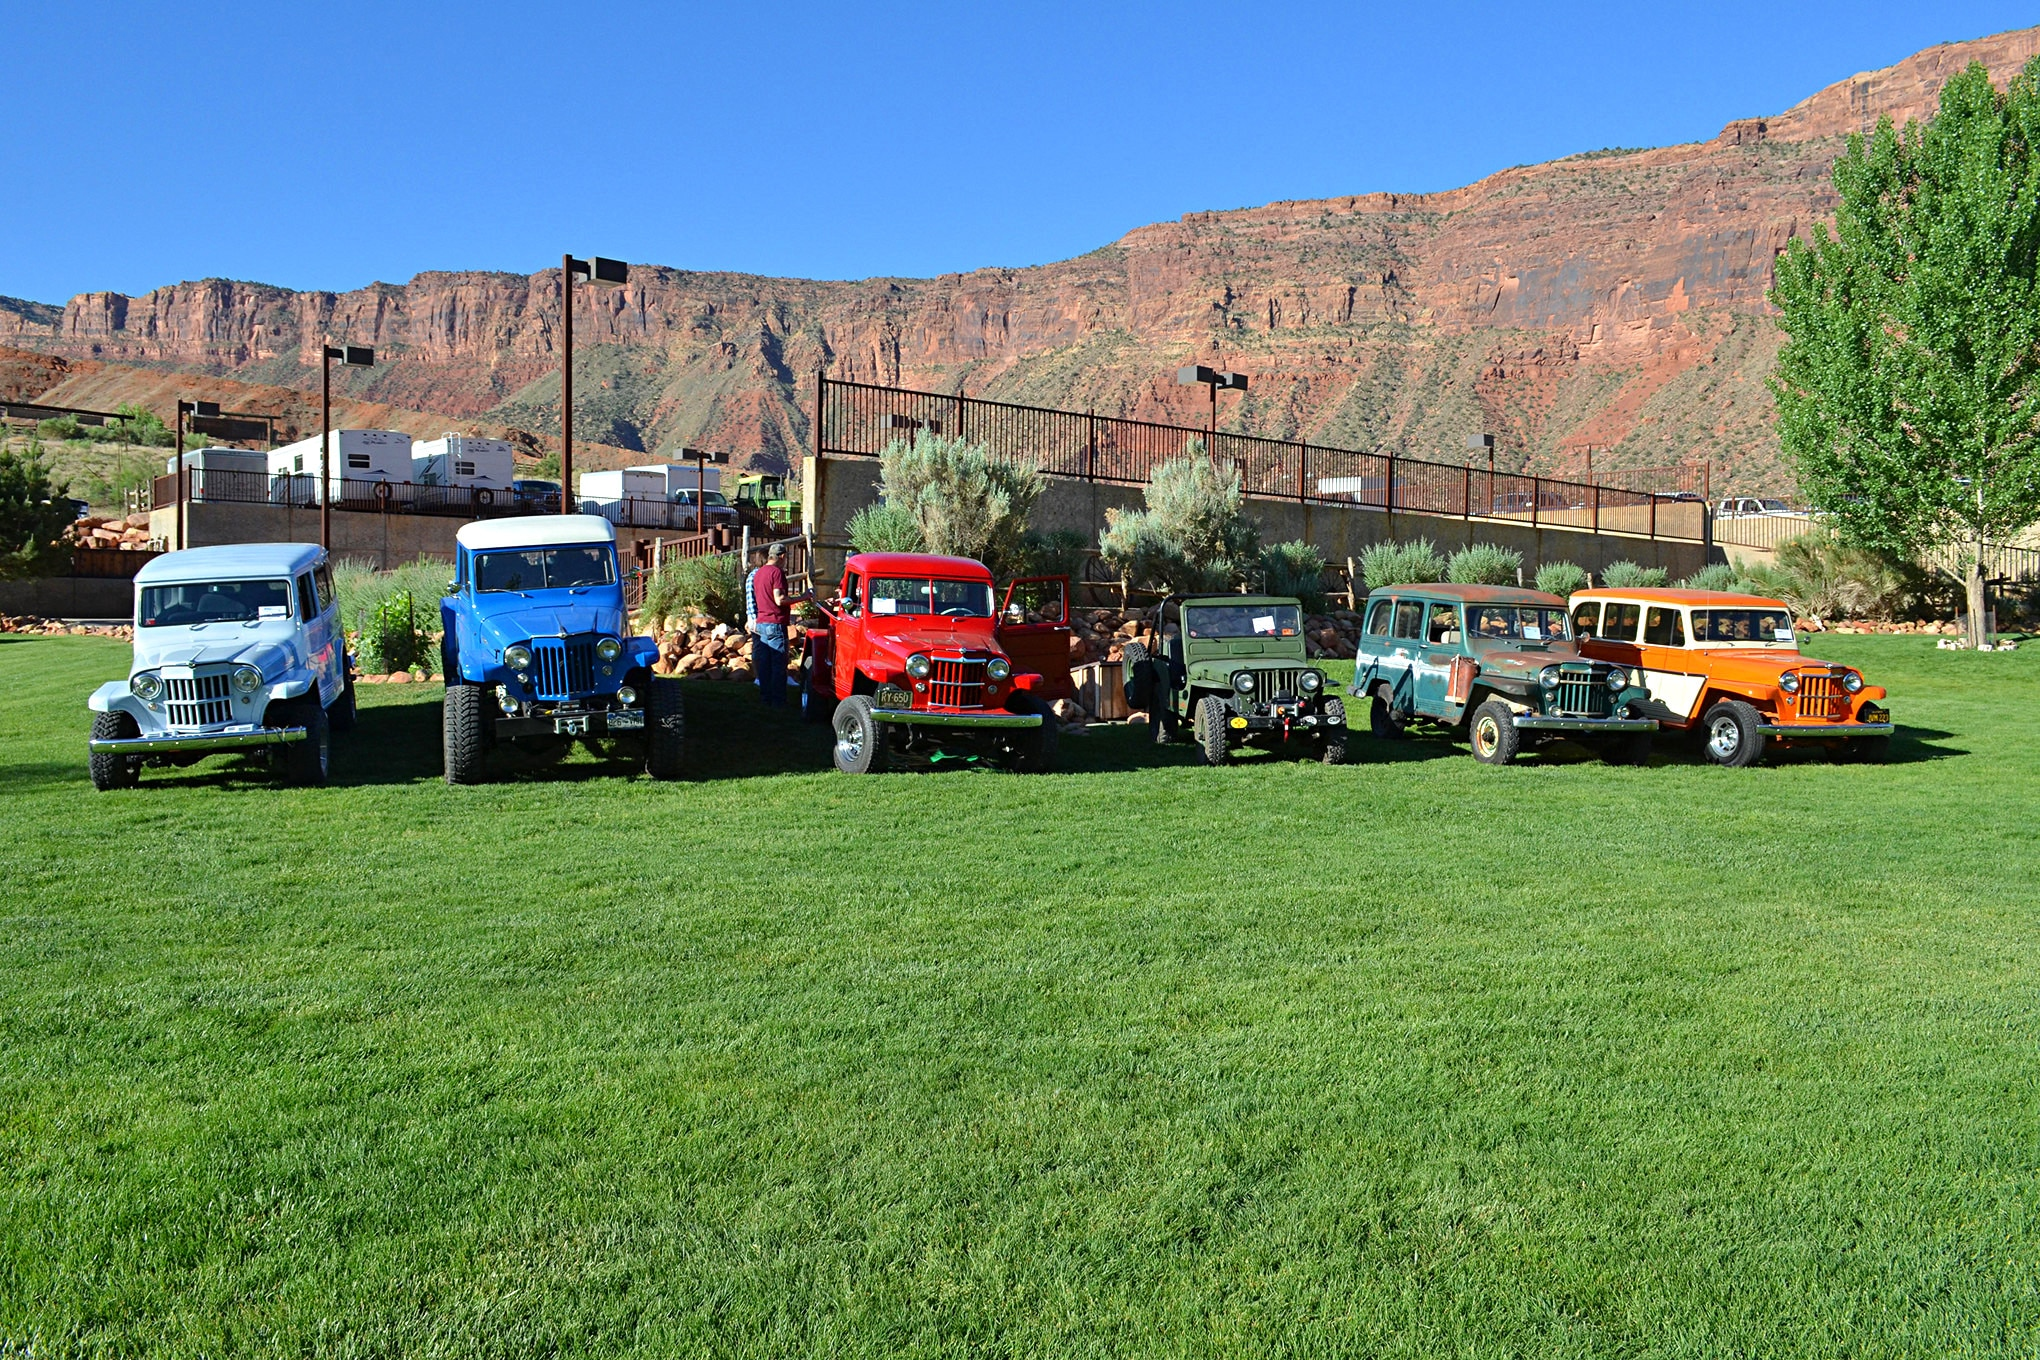 048 willys rally moab 2018 gallery.JPG